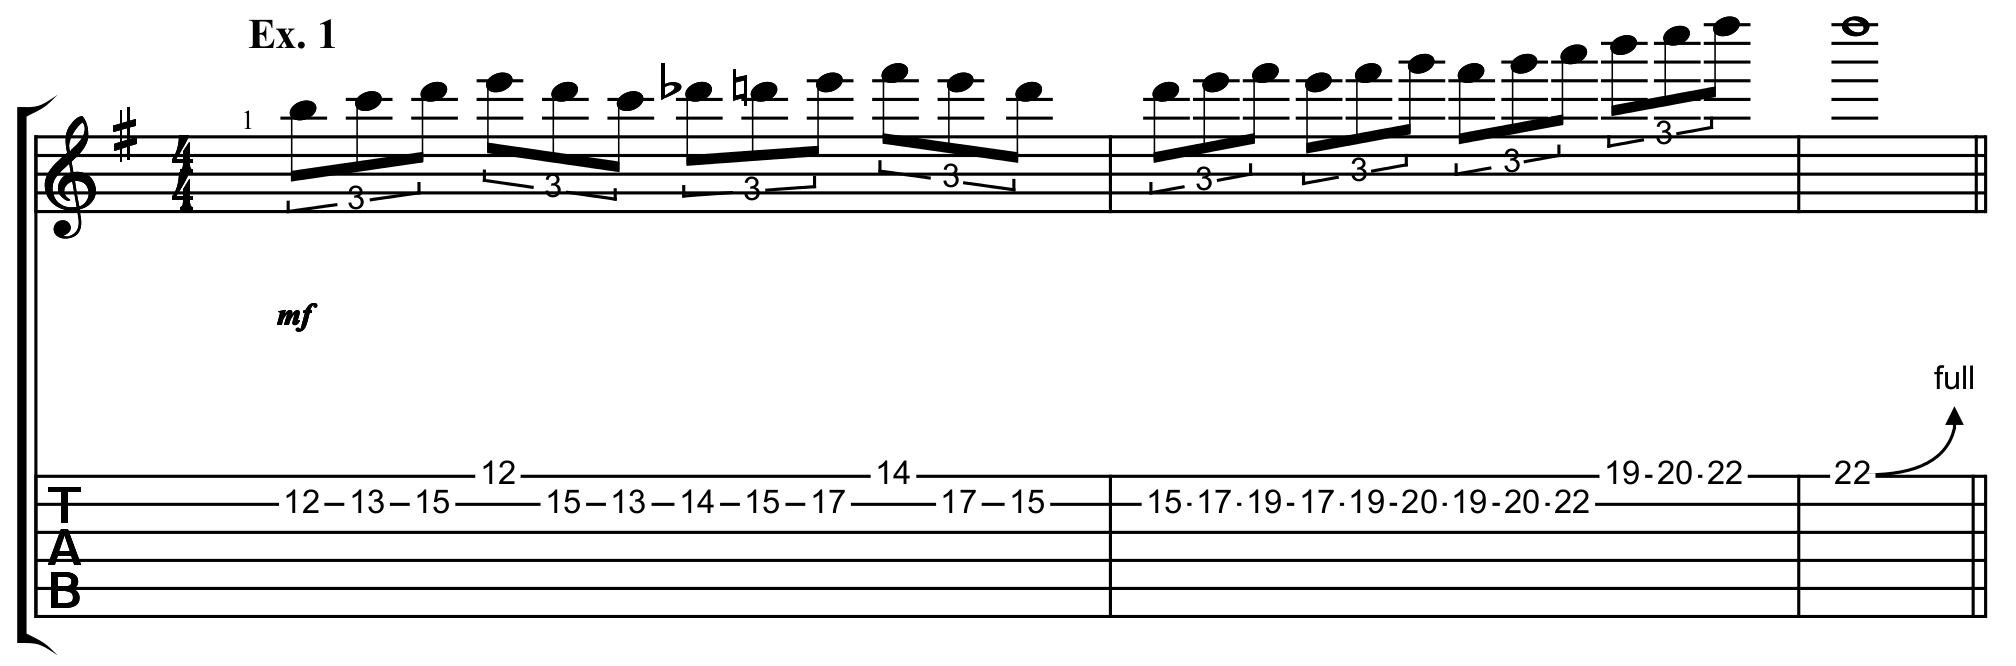 a heavy metal scale run in the key of E minor